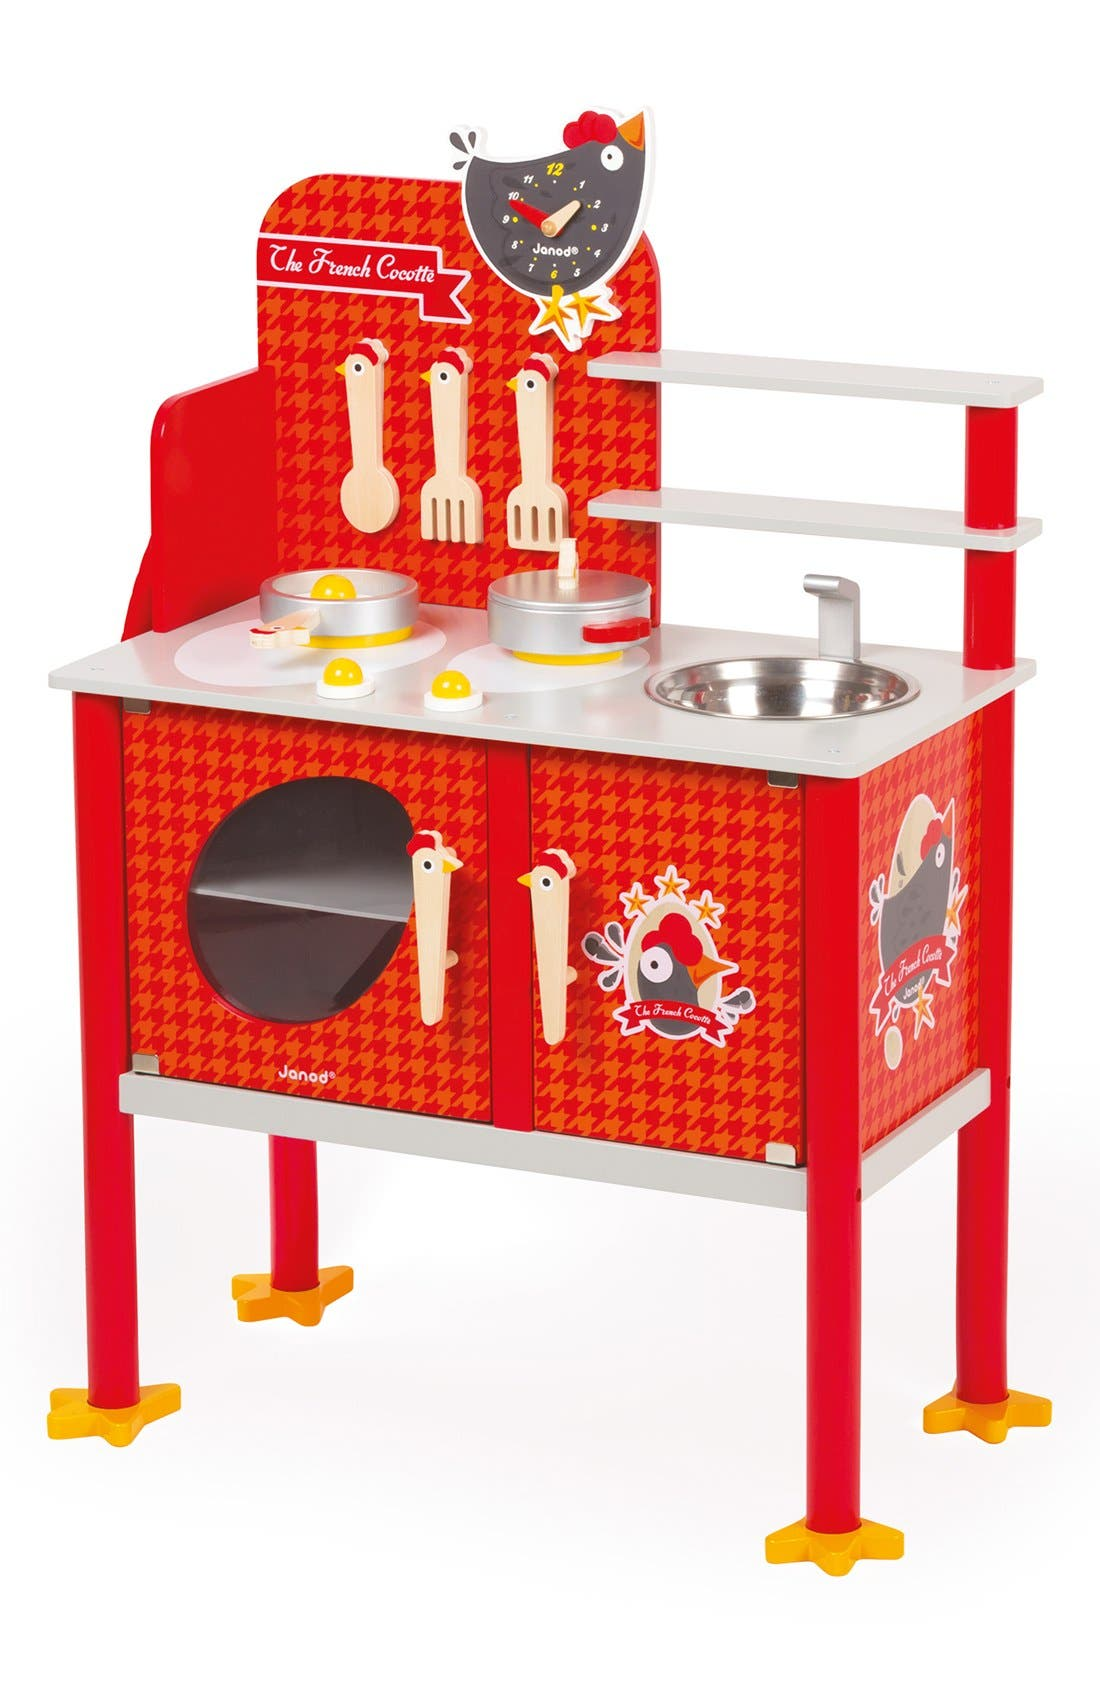 'French Cocotte - Maxi Cooker' Toy,                         Main,                         color, Multi